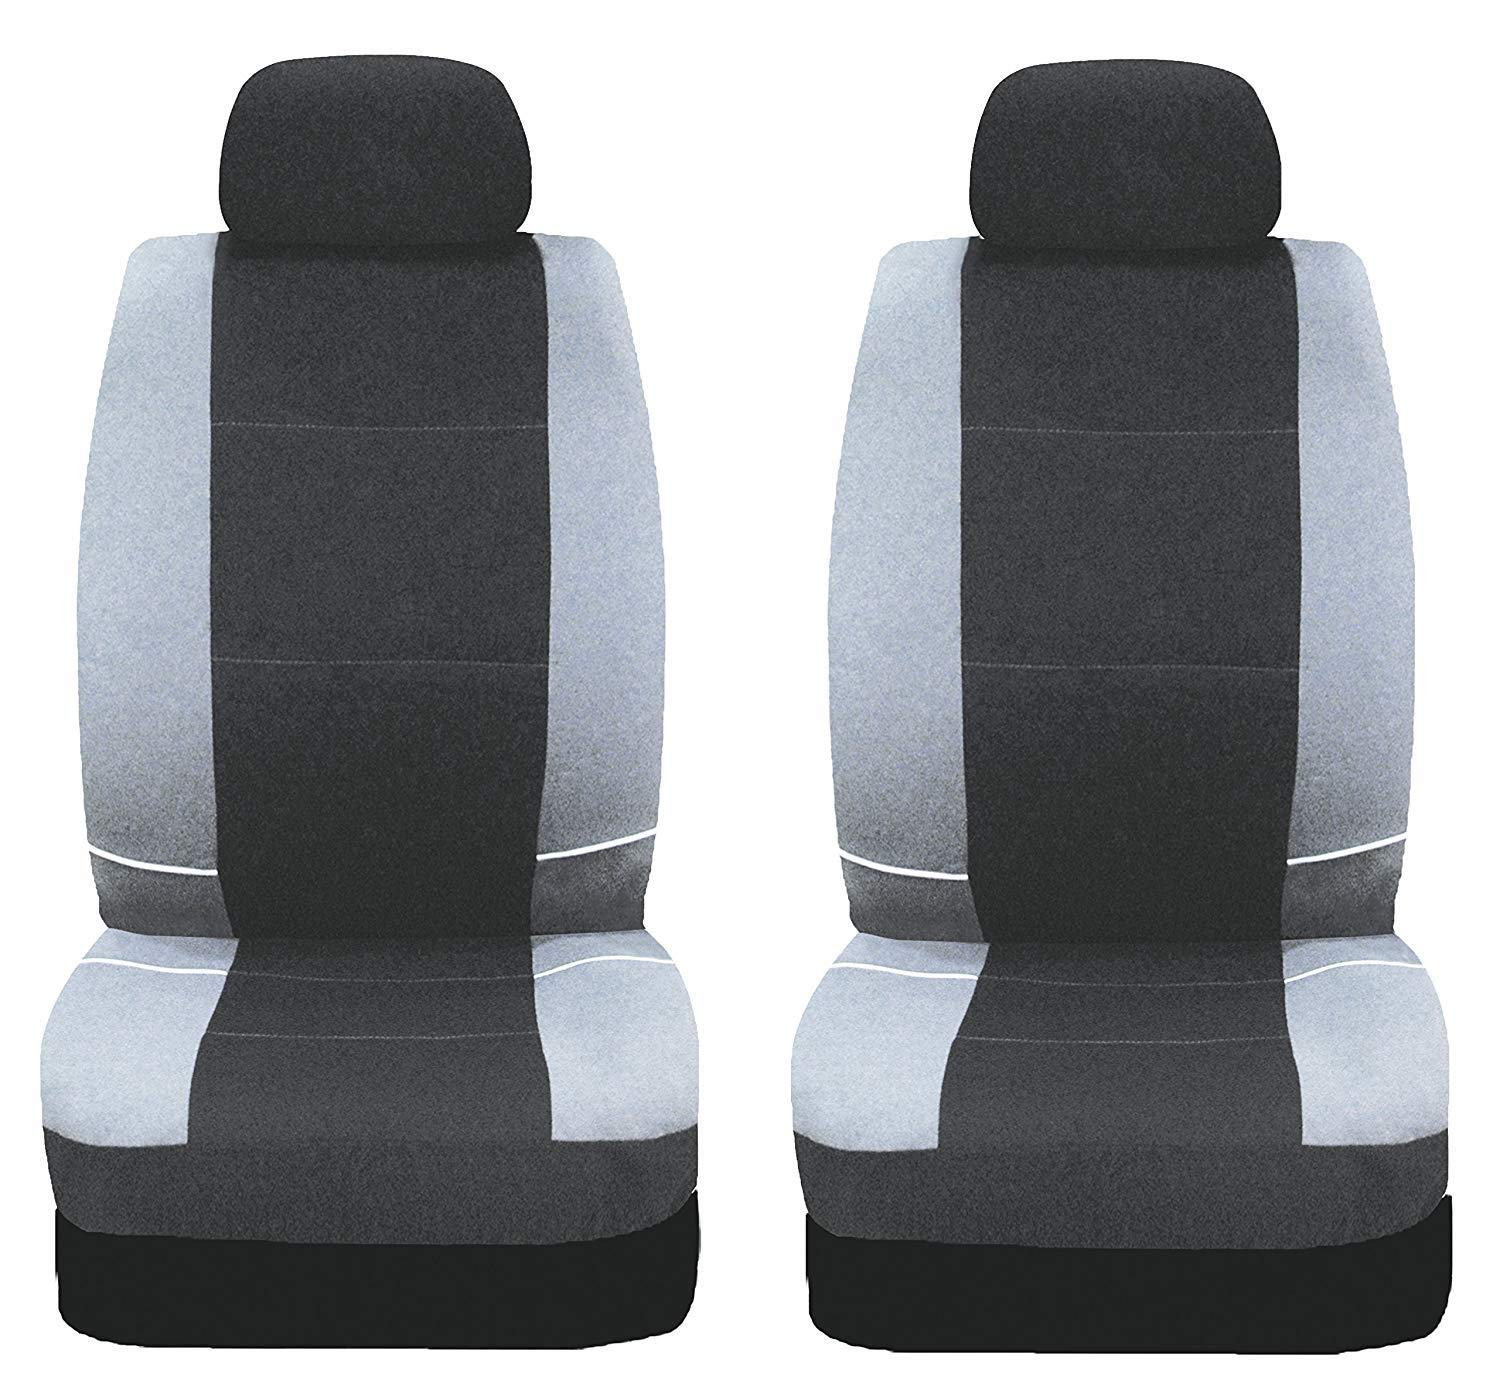 UKB4C Black /& Grey Steering Wheel Cover /& Front Seat Cover Set Washable Airbag Safe Full Protection